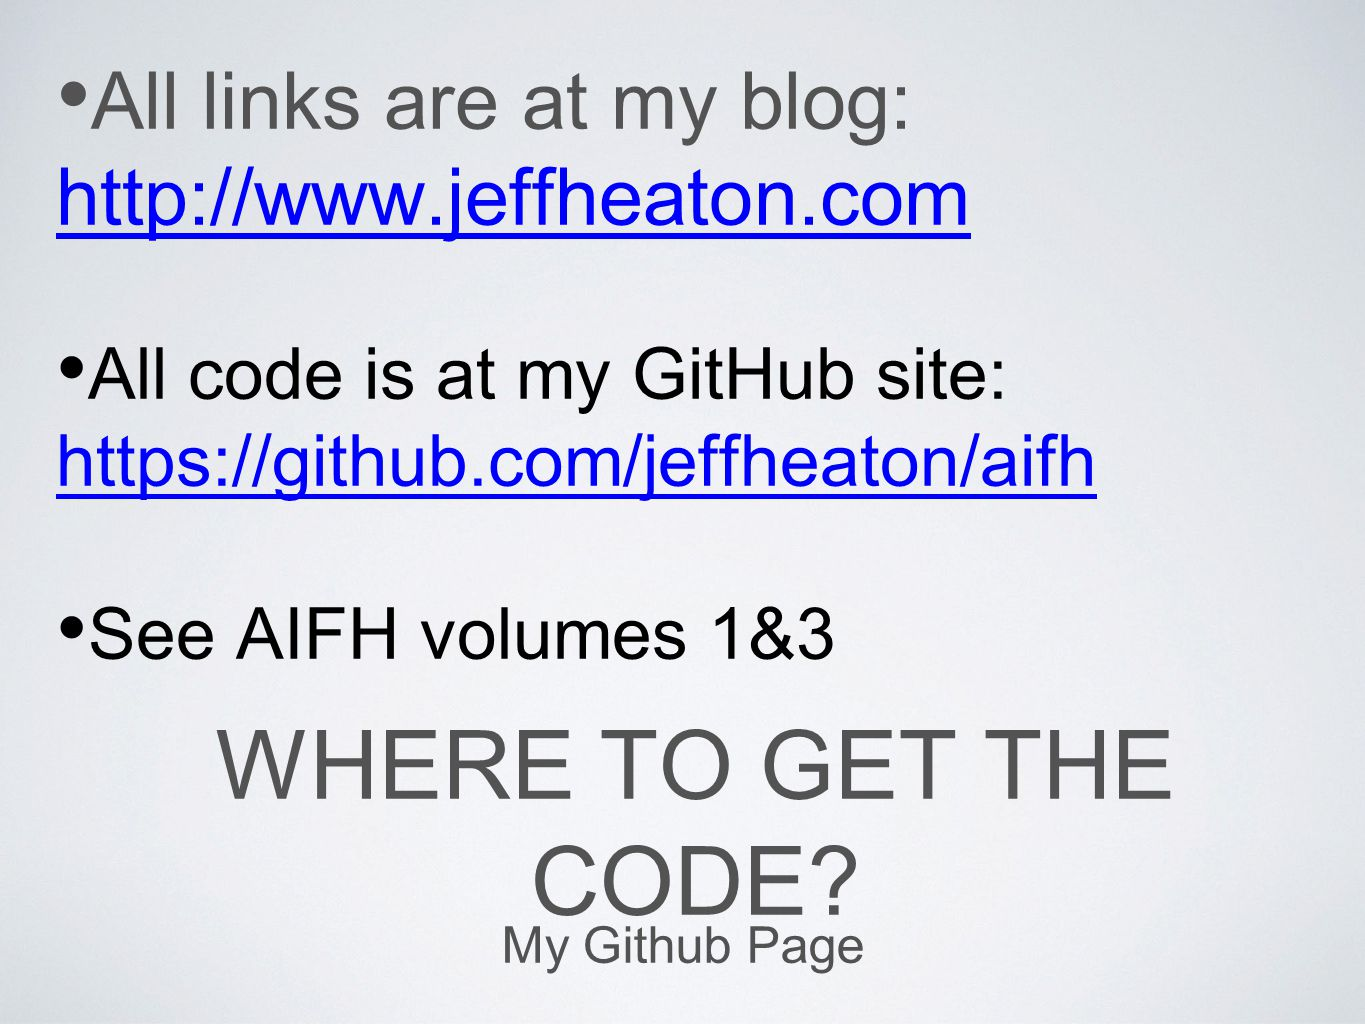 All links are at my blog: http://www.jeffheaton.com